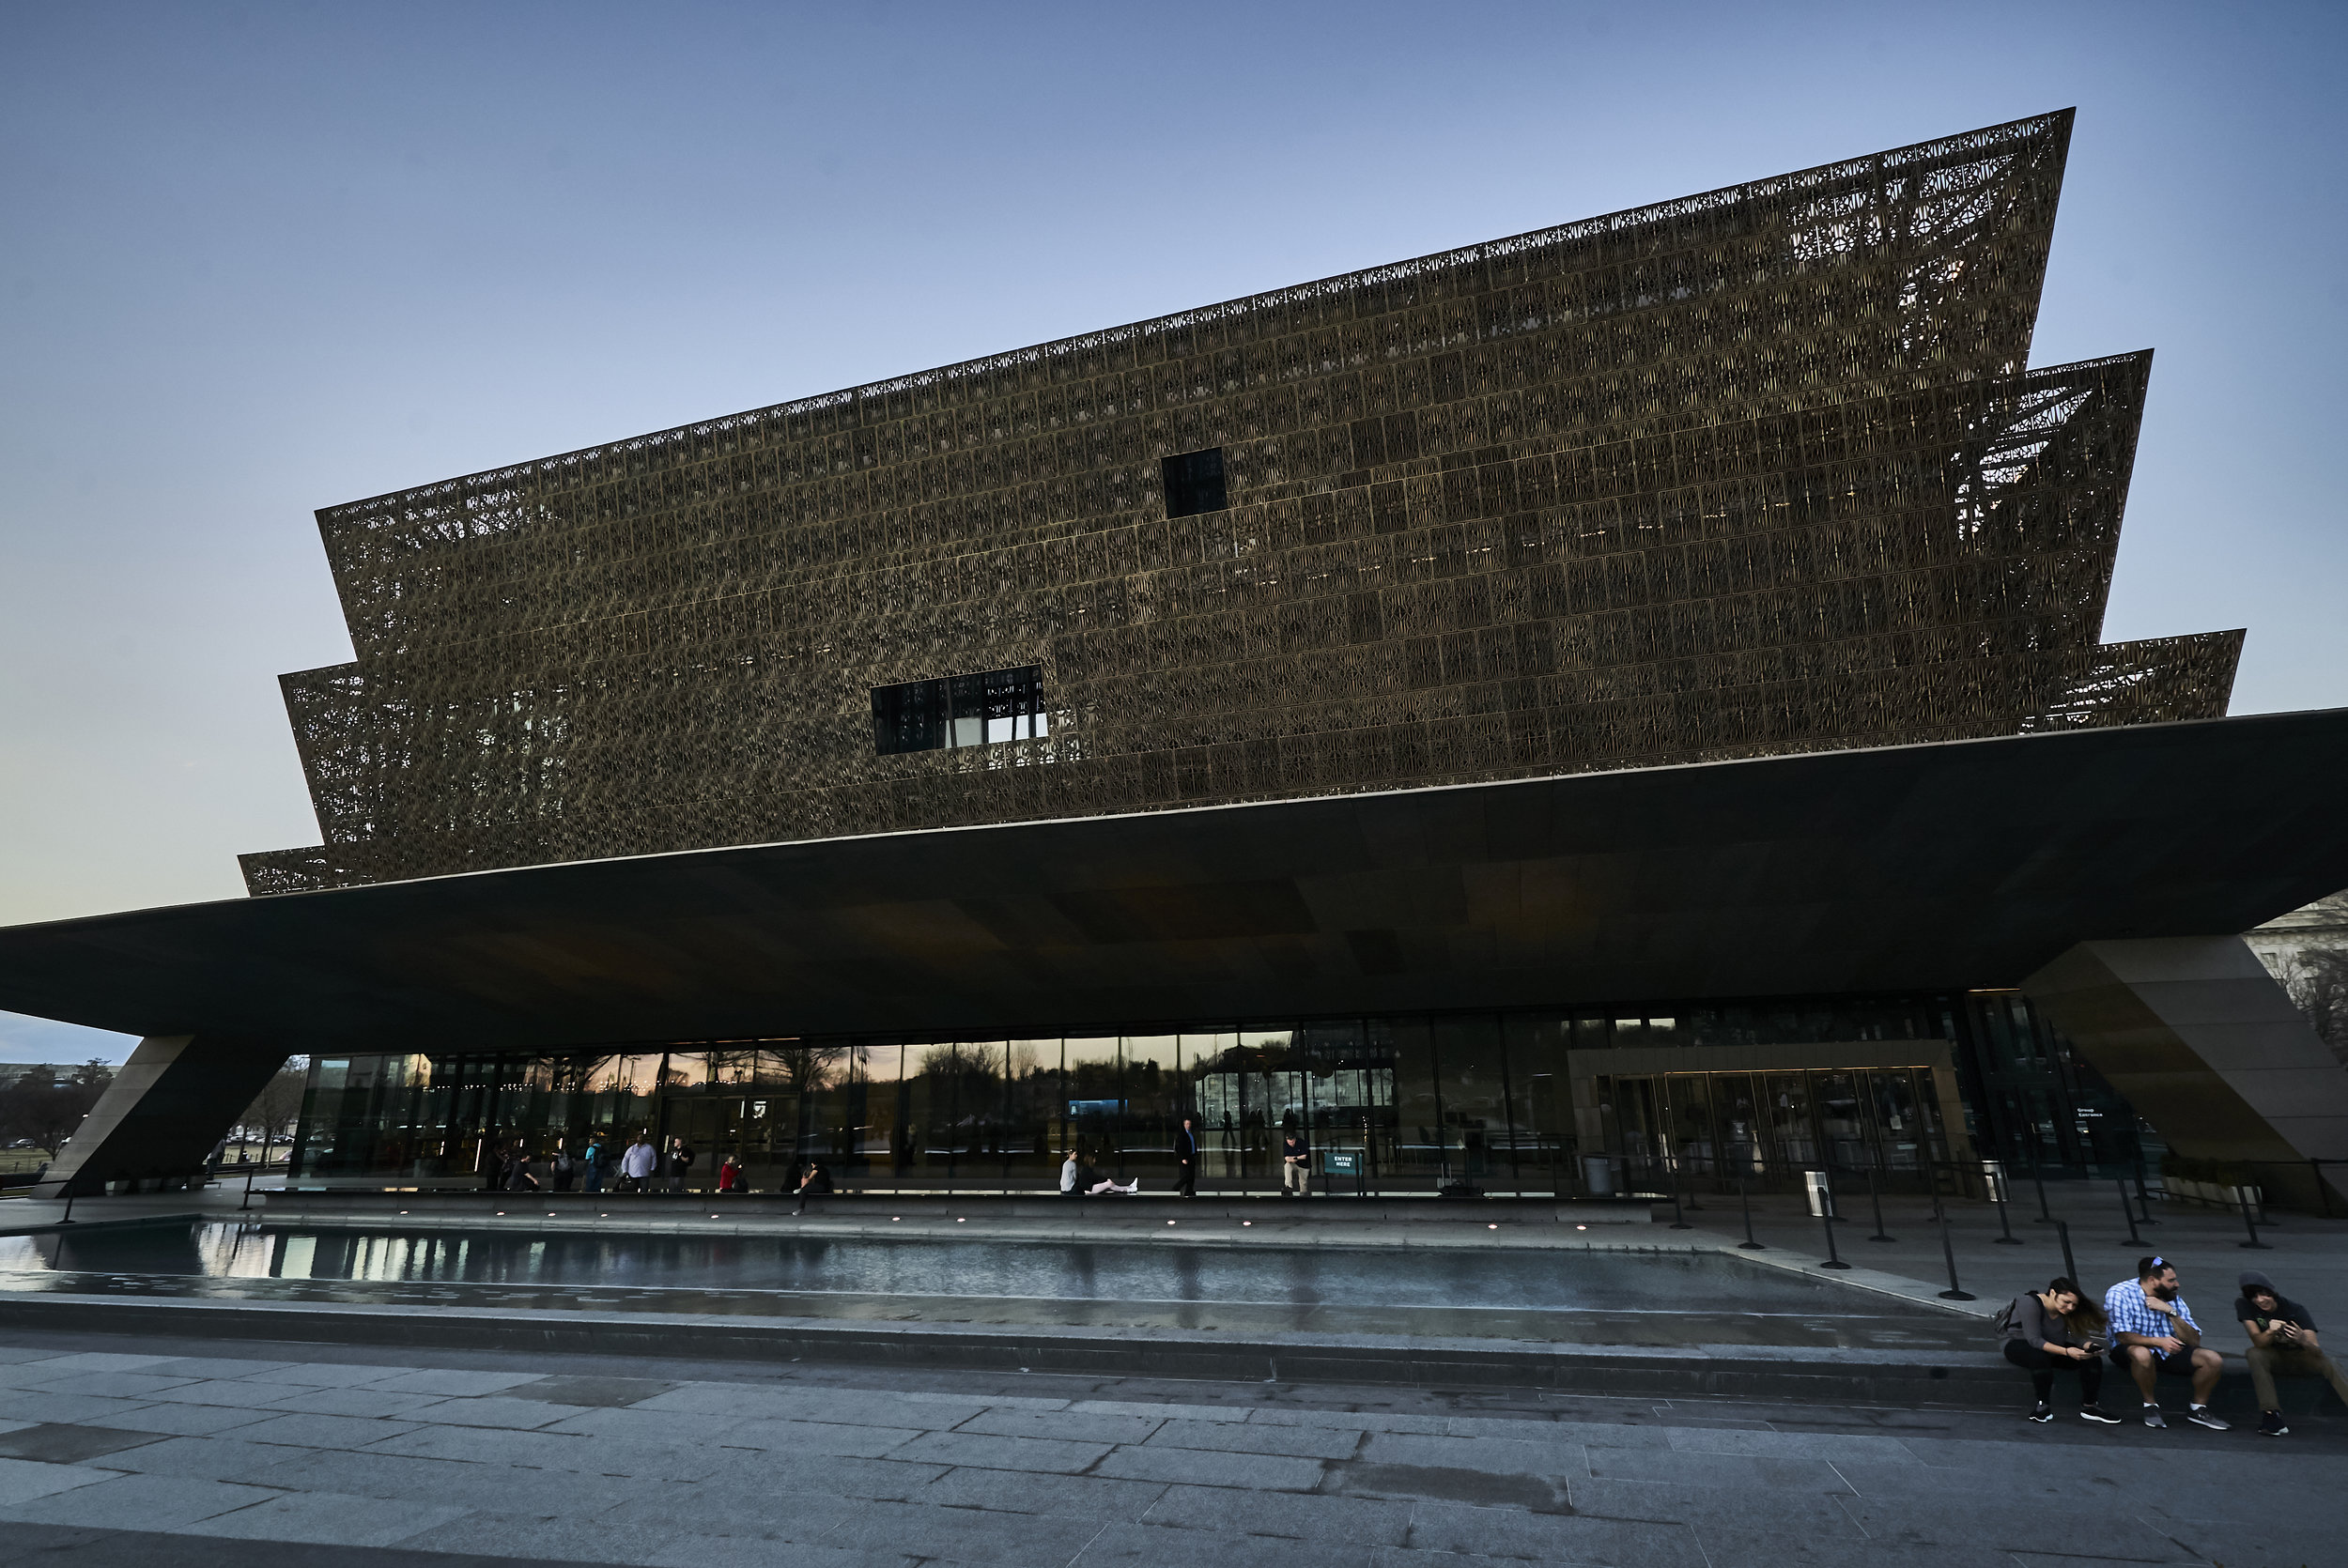 National Museum of African American History and Culture (Smithsonian, Washington, DC USA)